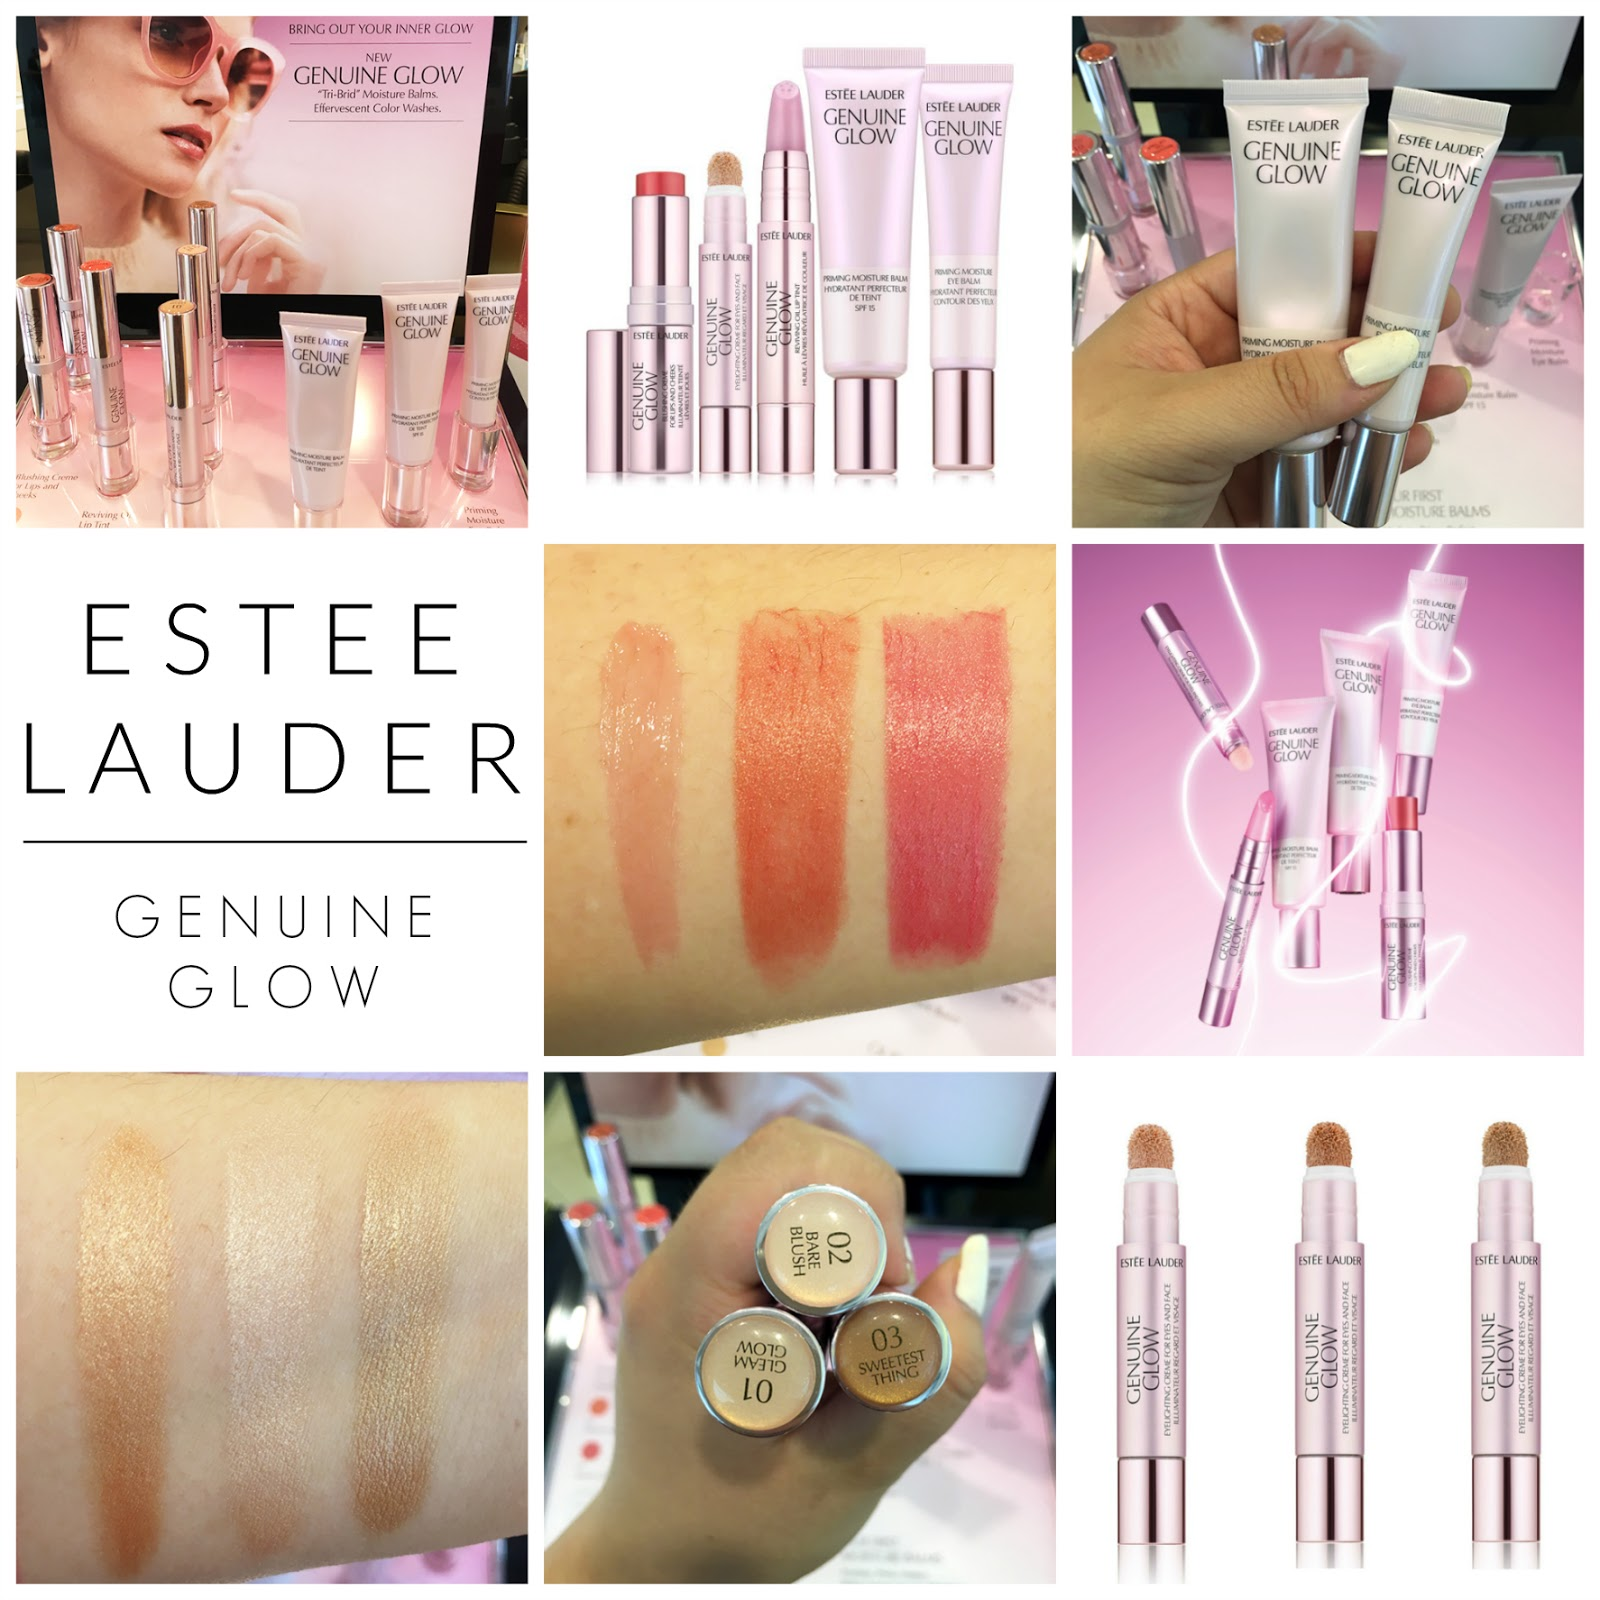 estee-lauder-genuine-glow-review-swatches